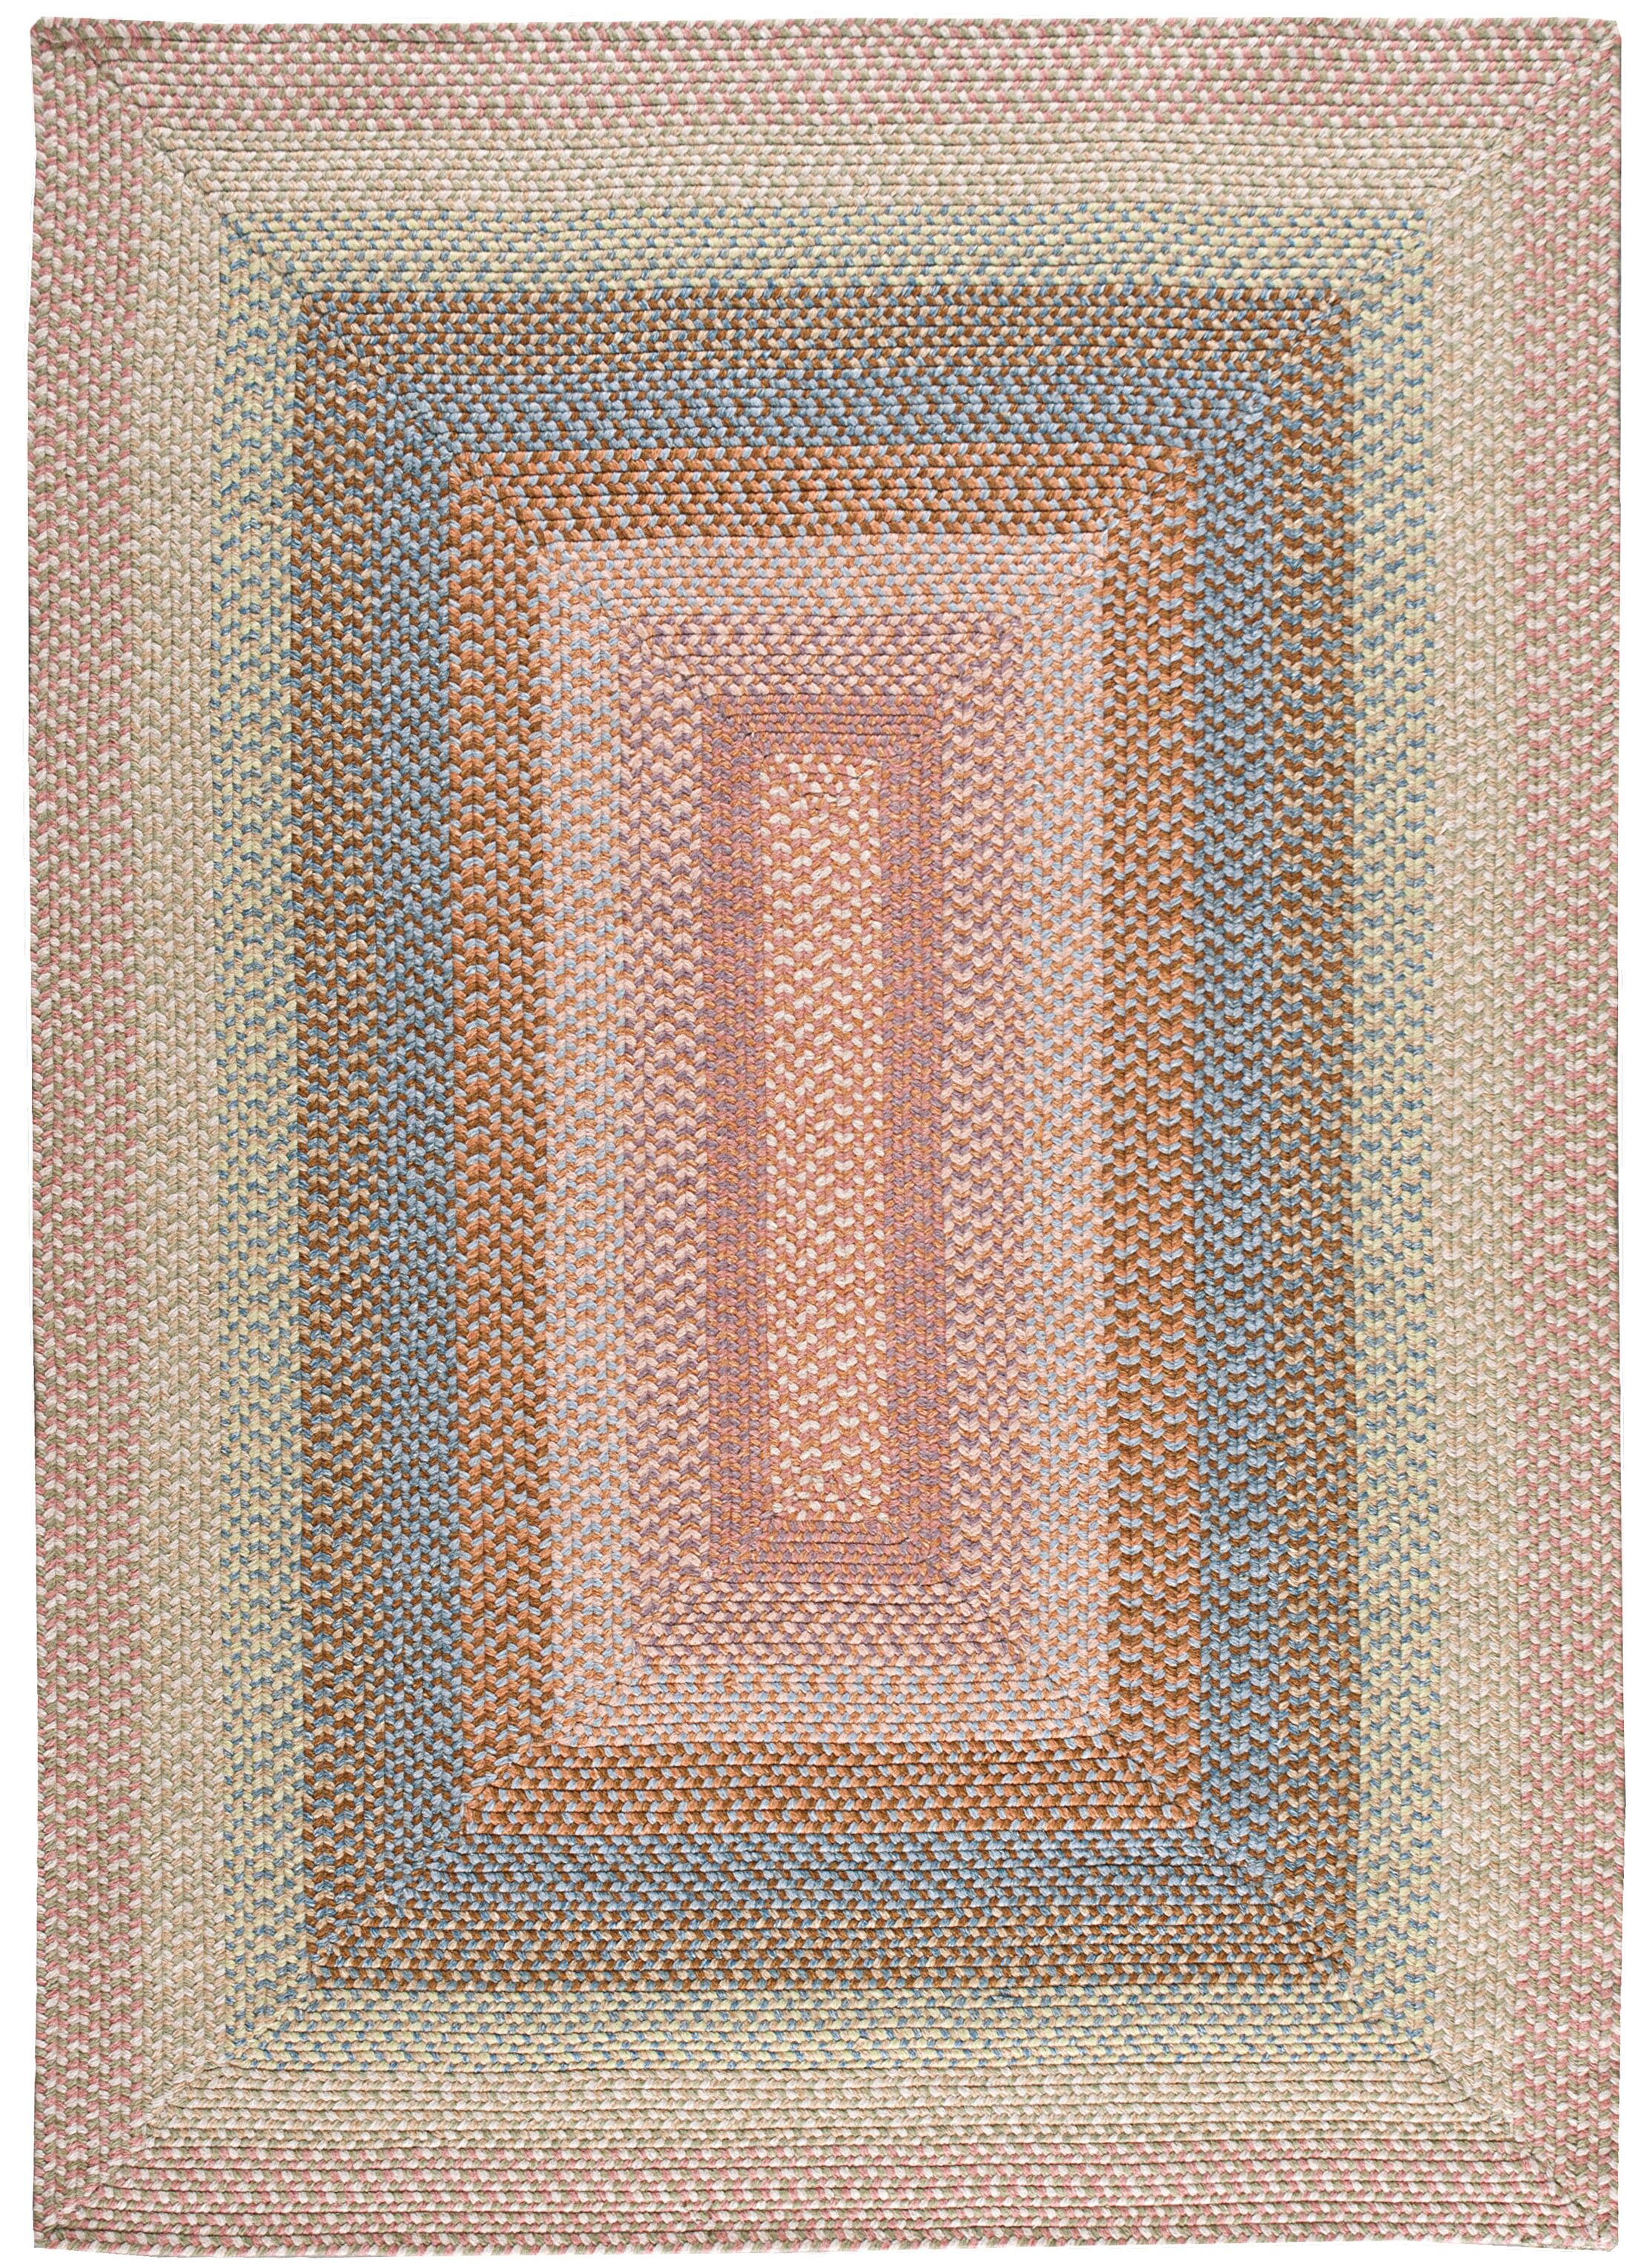 Dray Hand-Woven Coral Area Rug Rug Size: Oval Runner 2'3